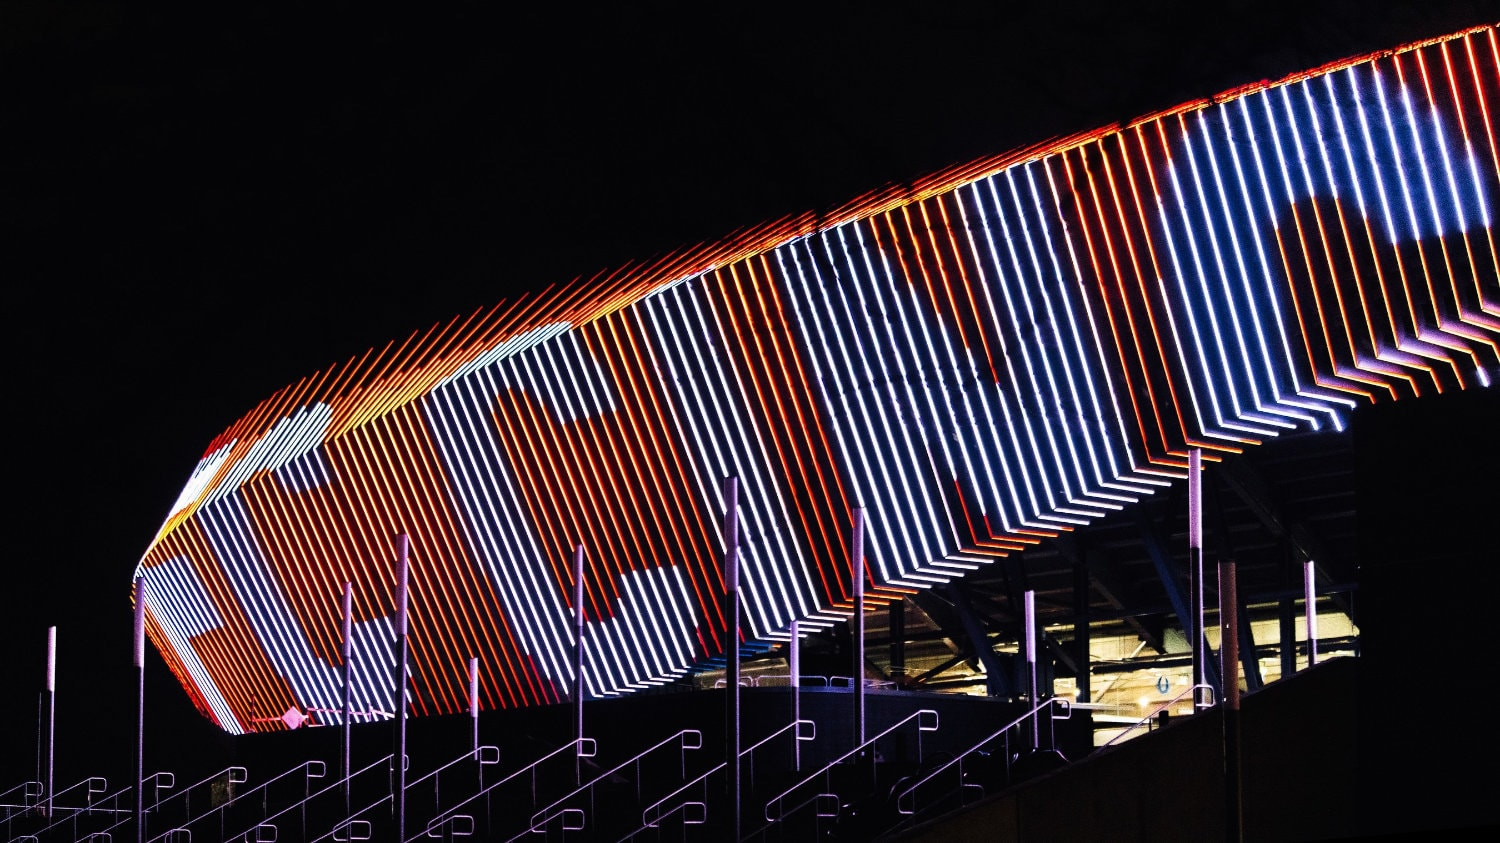 TQL Stadium features a one-of-a-kind dyanmic LED lighted facade.